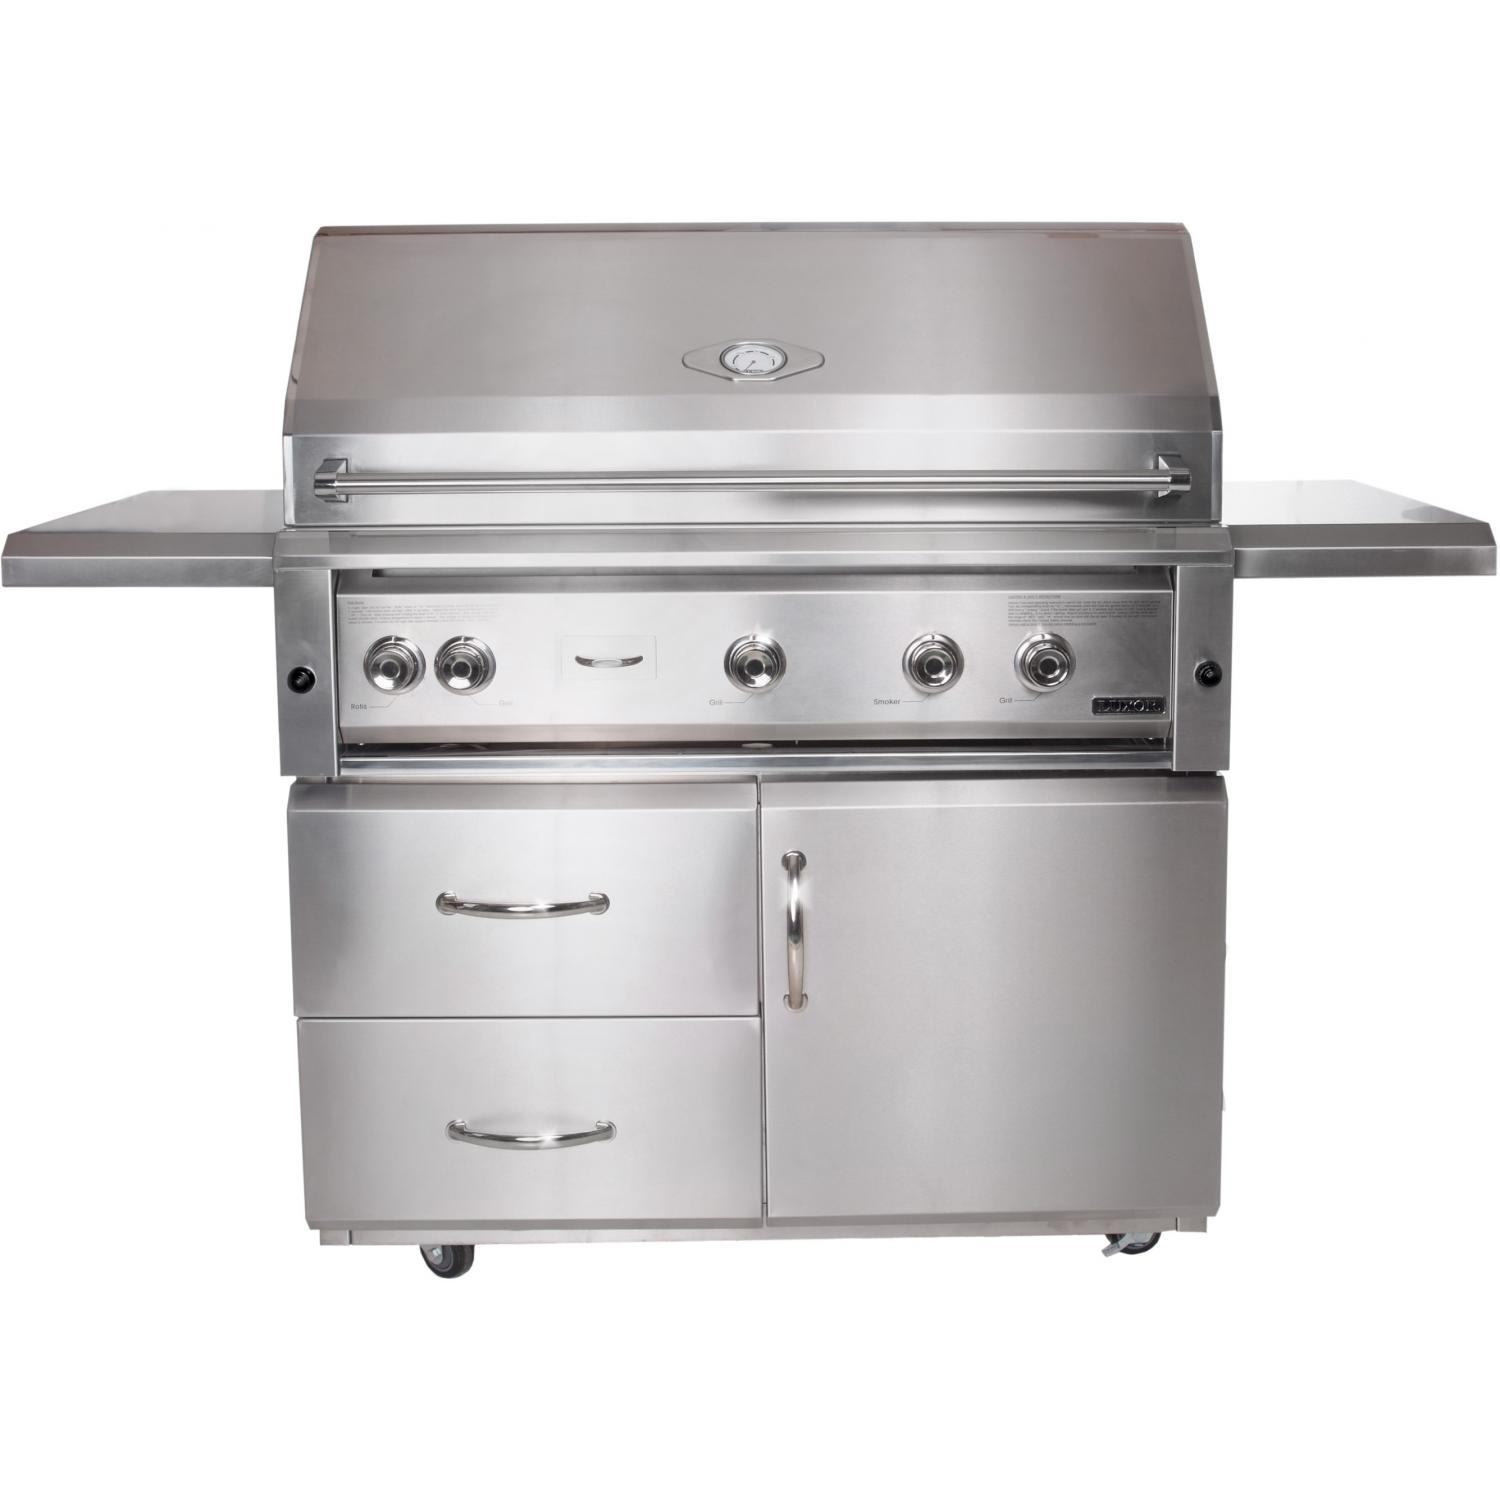 Luxor Gas Grills 42 Inch Propane Gas Grill On Cart With 1 Infrared Burner And Rotisserie Aht-42cv-fr-lp 1 at Sears.com